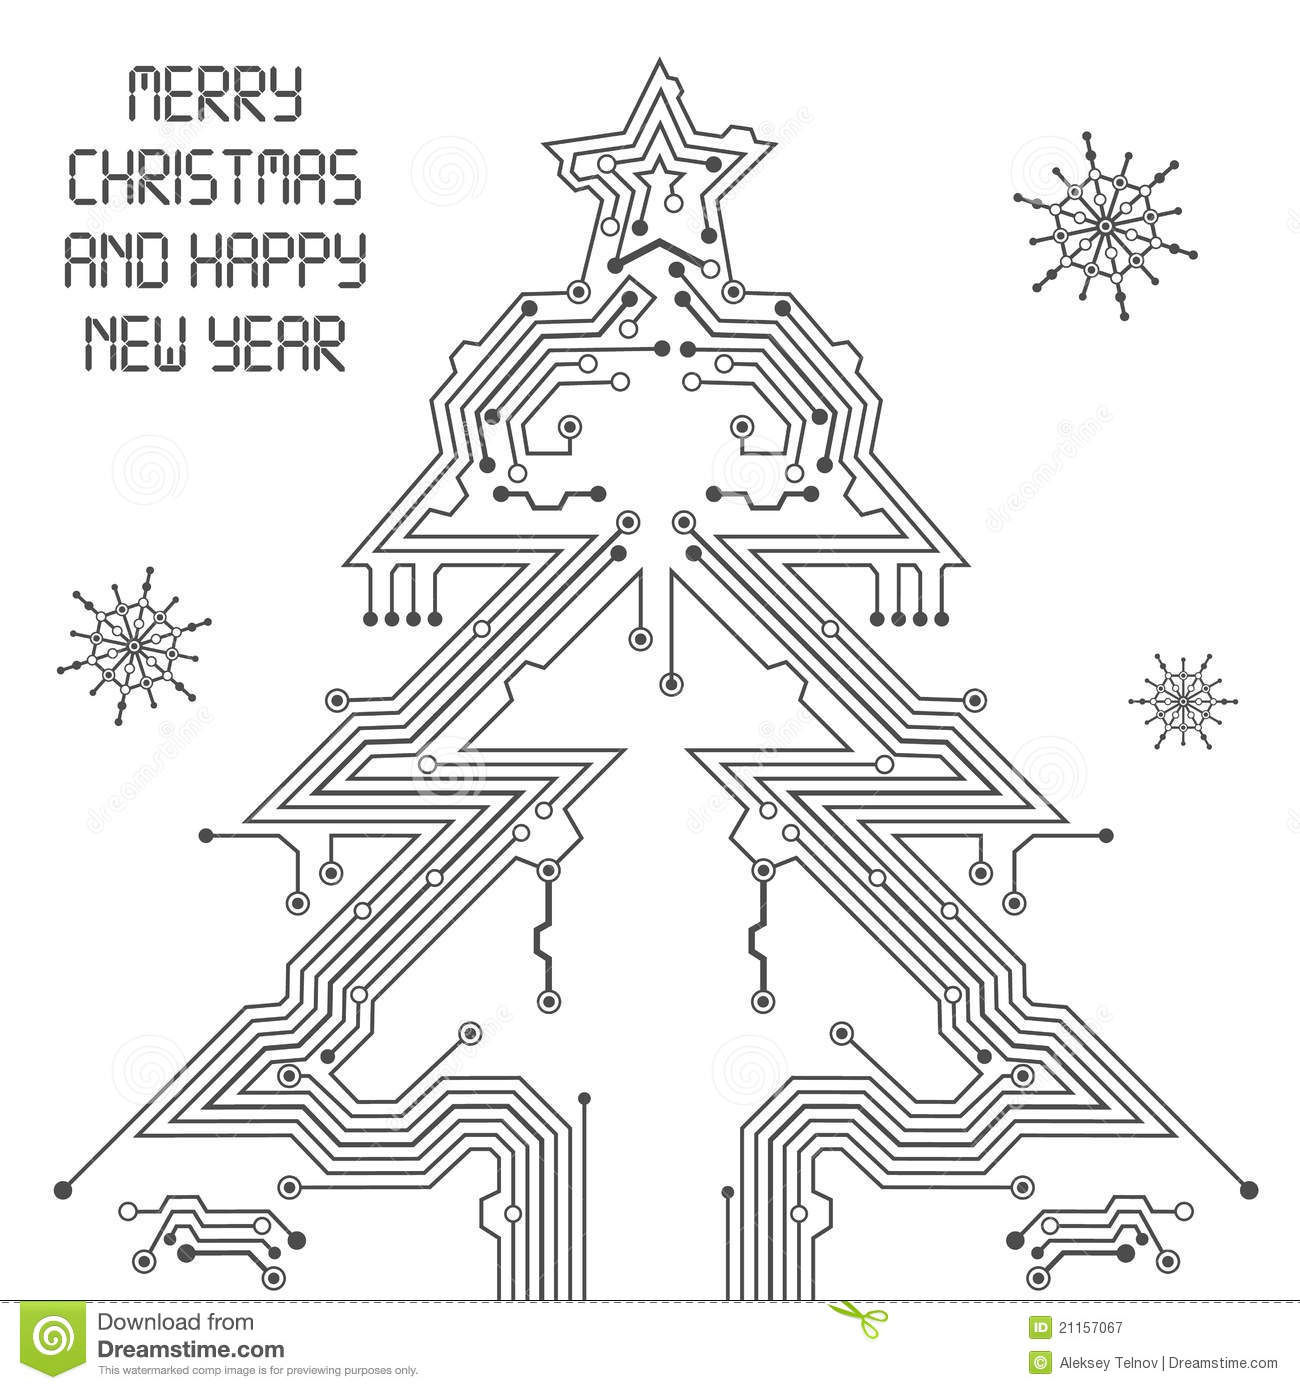 Lights In Series Wiring Diagram moreover US8007129 in addition Royalty Free Stock Photography Christmas Tree Circuit Board Image21157067 furthermore Alphabets And Symbols moreover River Otter Coloring Pages. on christmas tree circuit